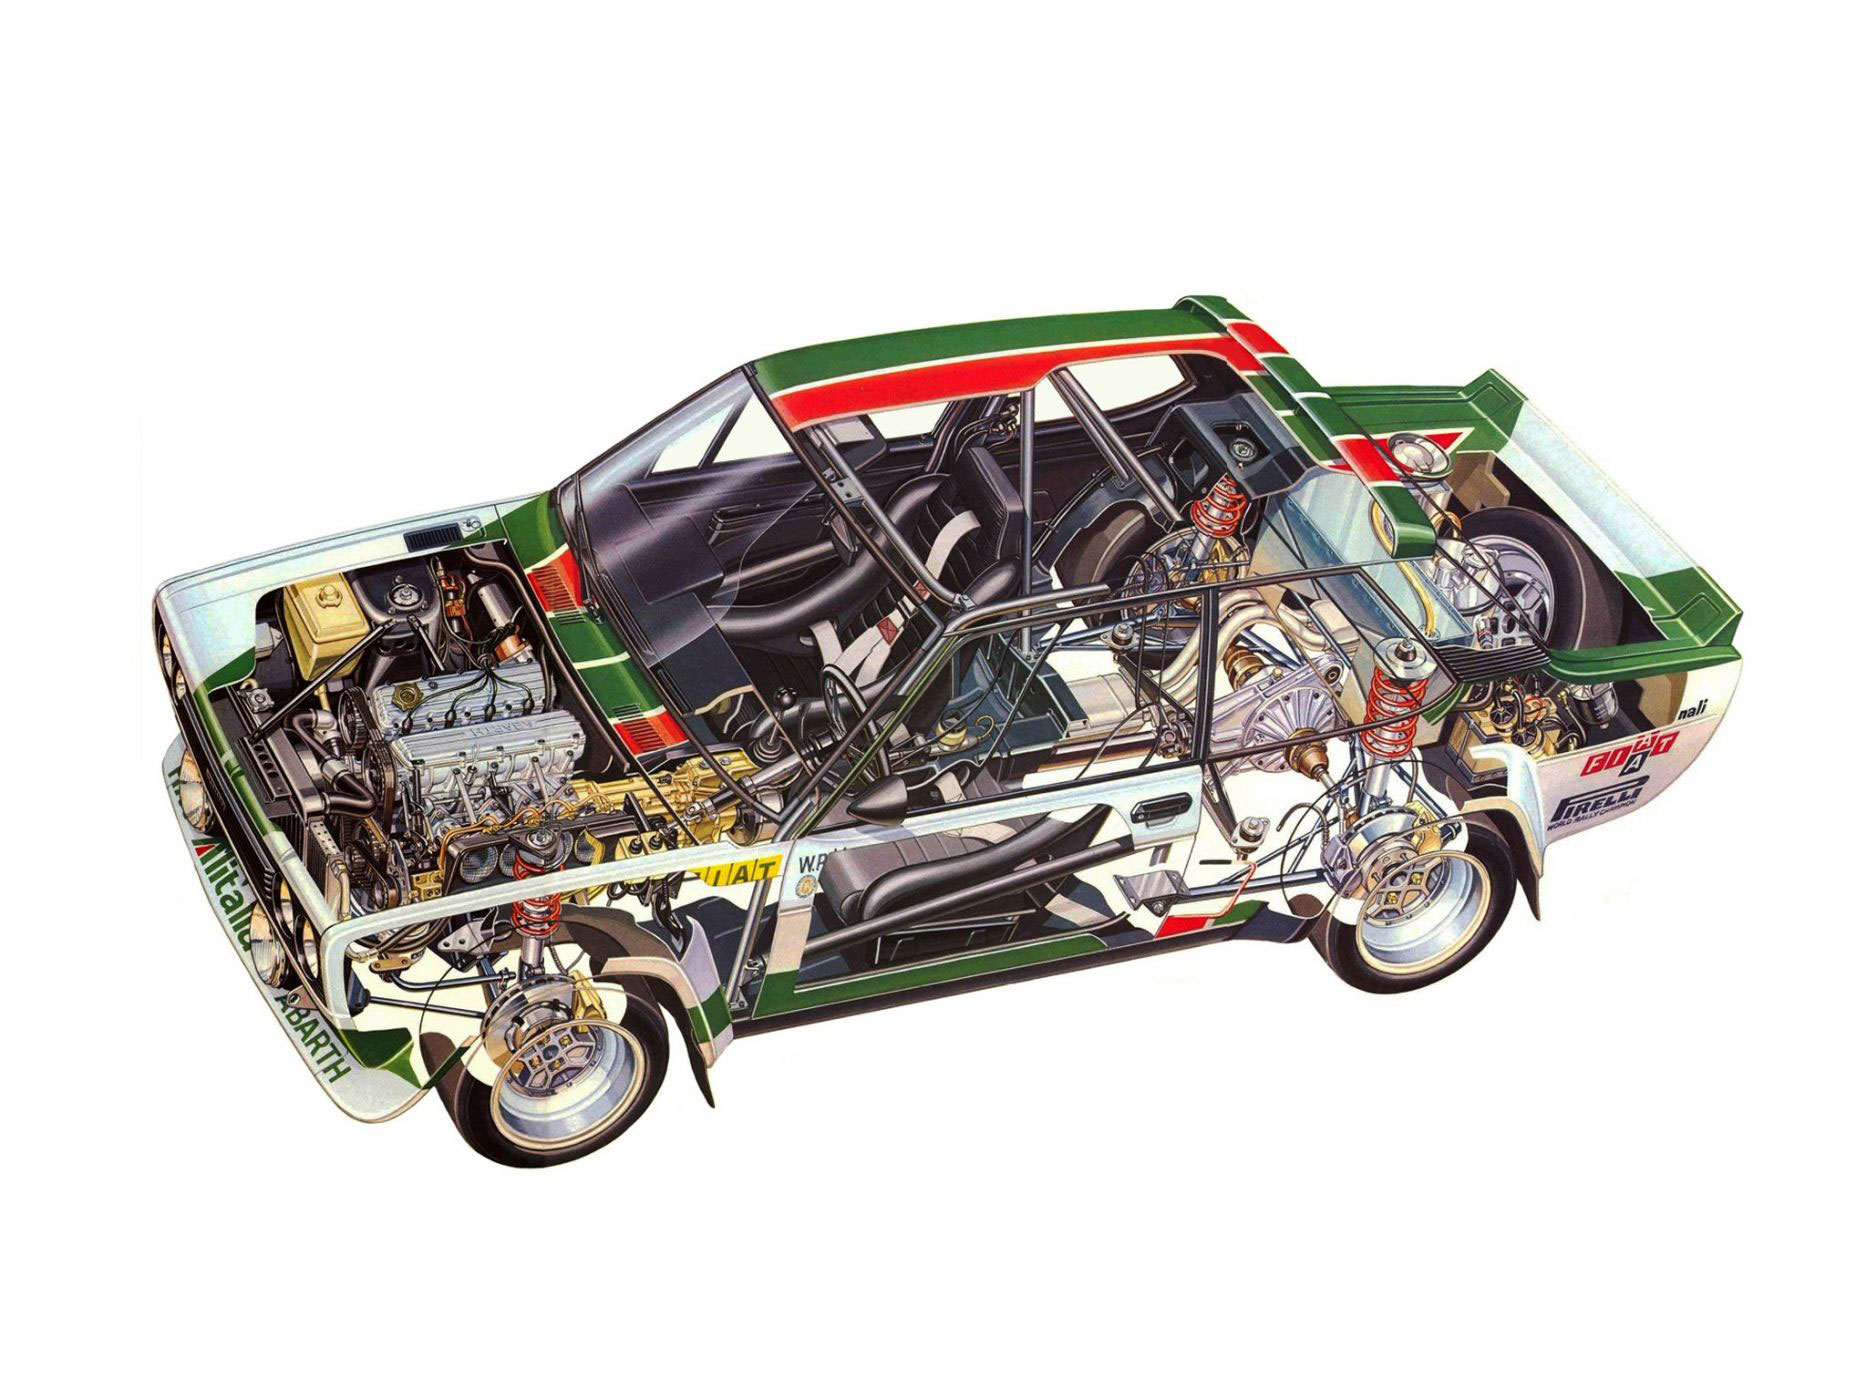 Fiat Abarth 131 Rally Corsa cutaway drawing